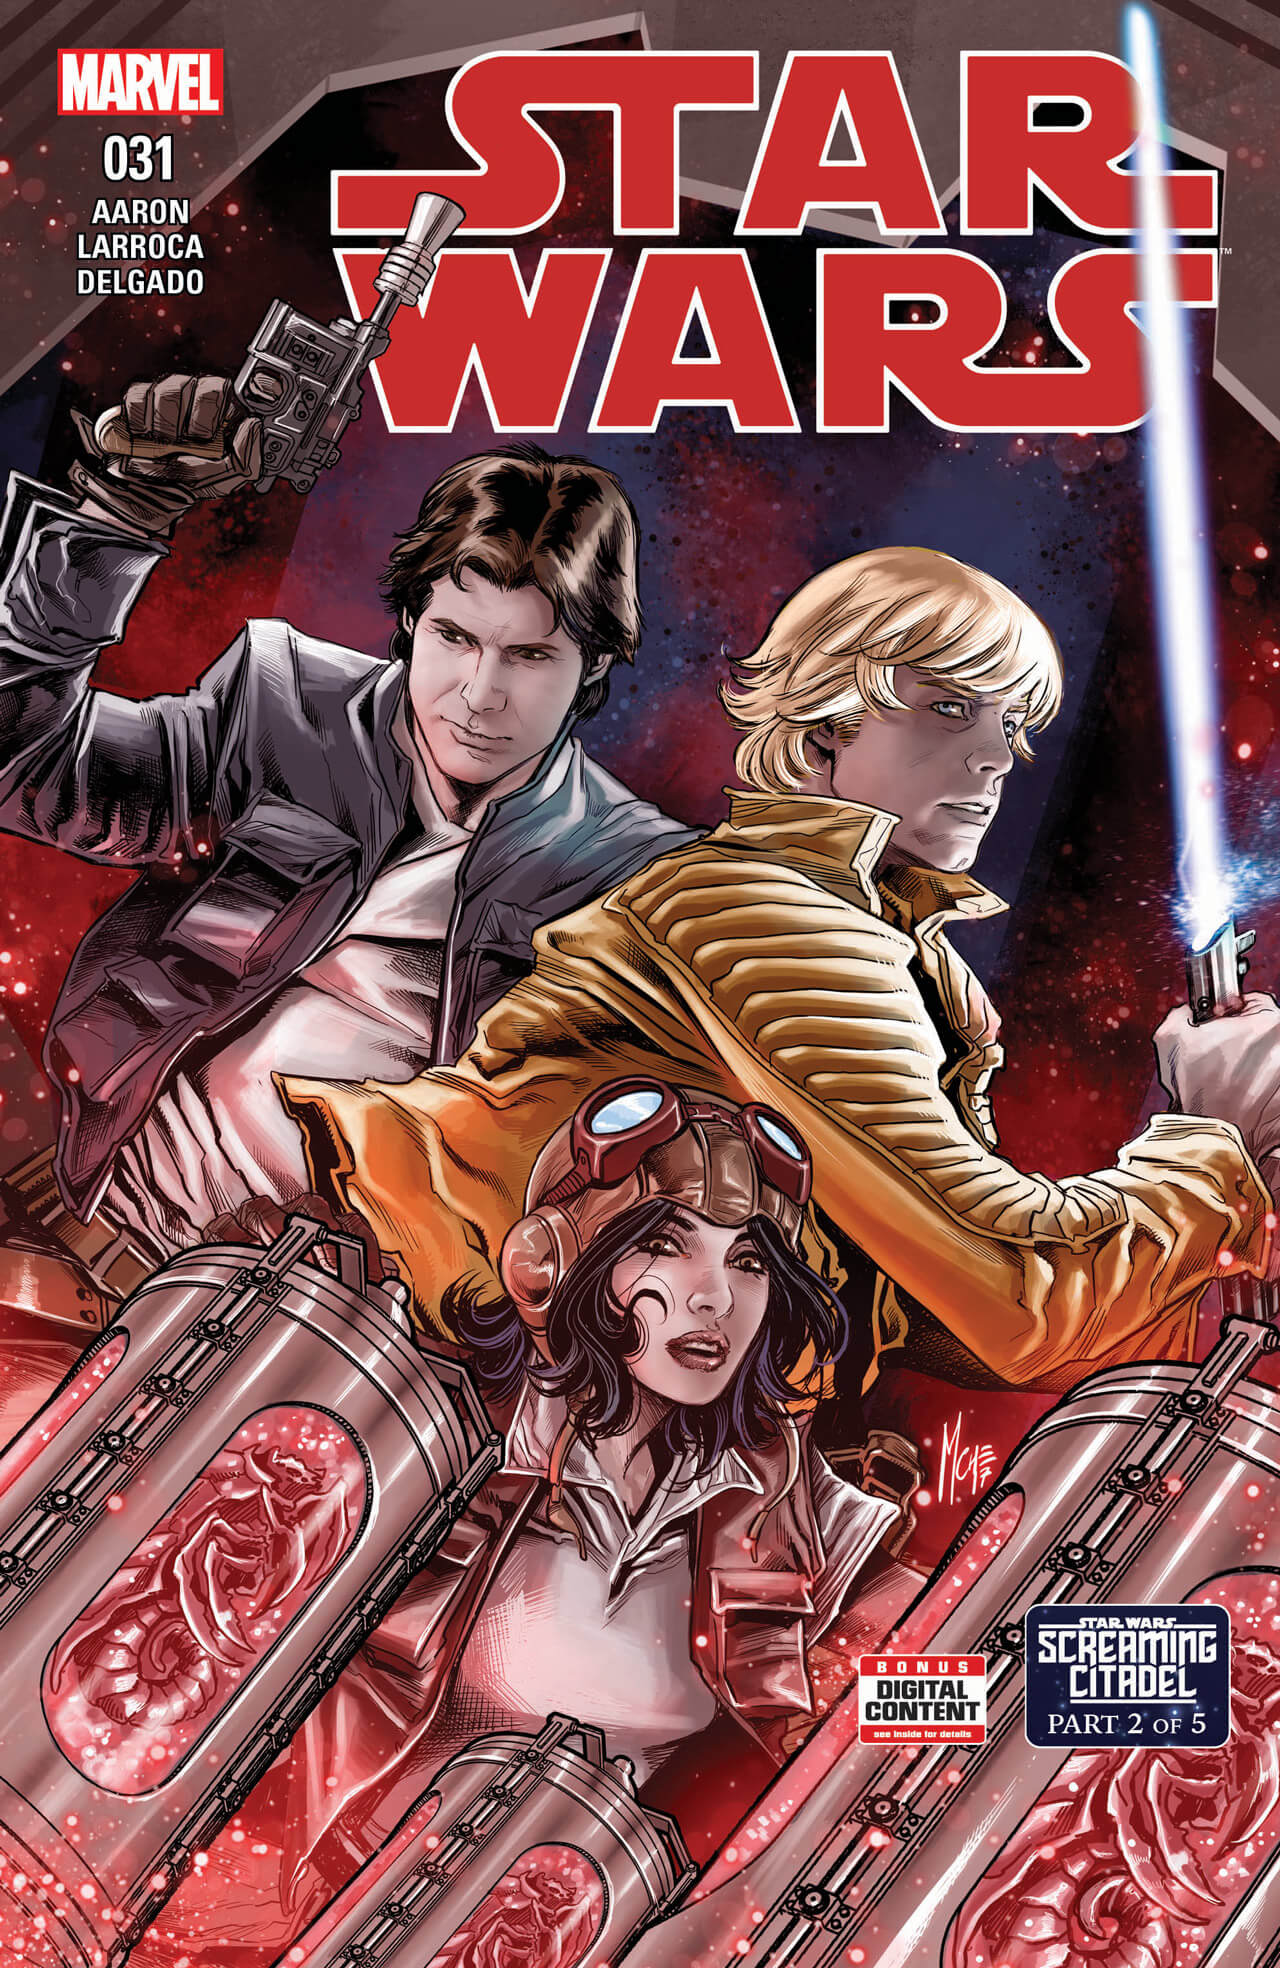 star wars screaming citadel3 1 - Star Wars: The Screaming Citadel Horror Comic Coming This Year